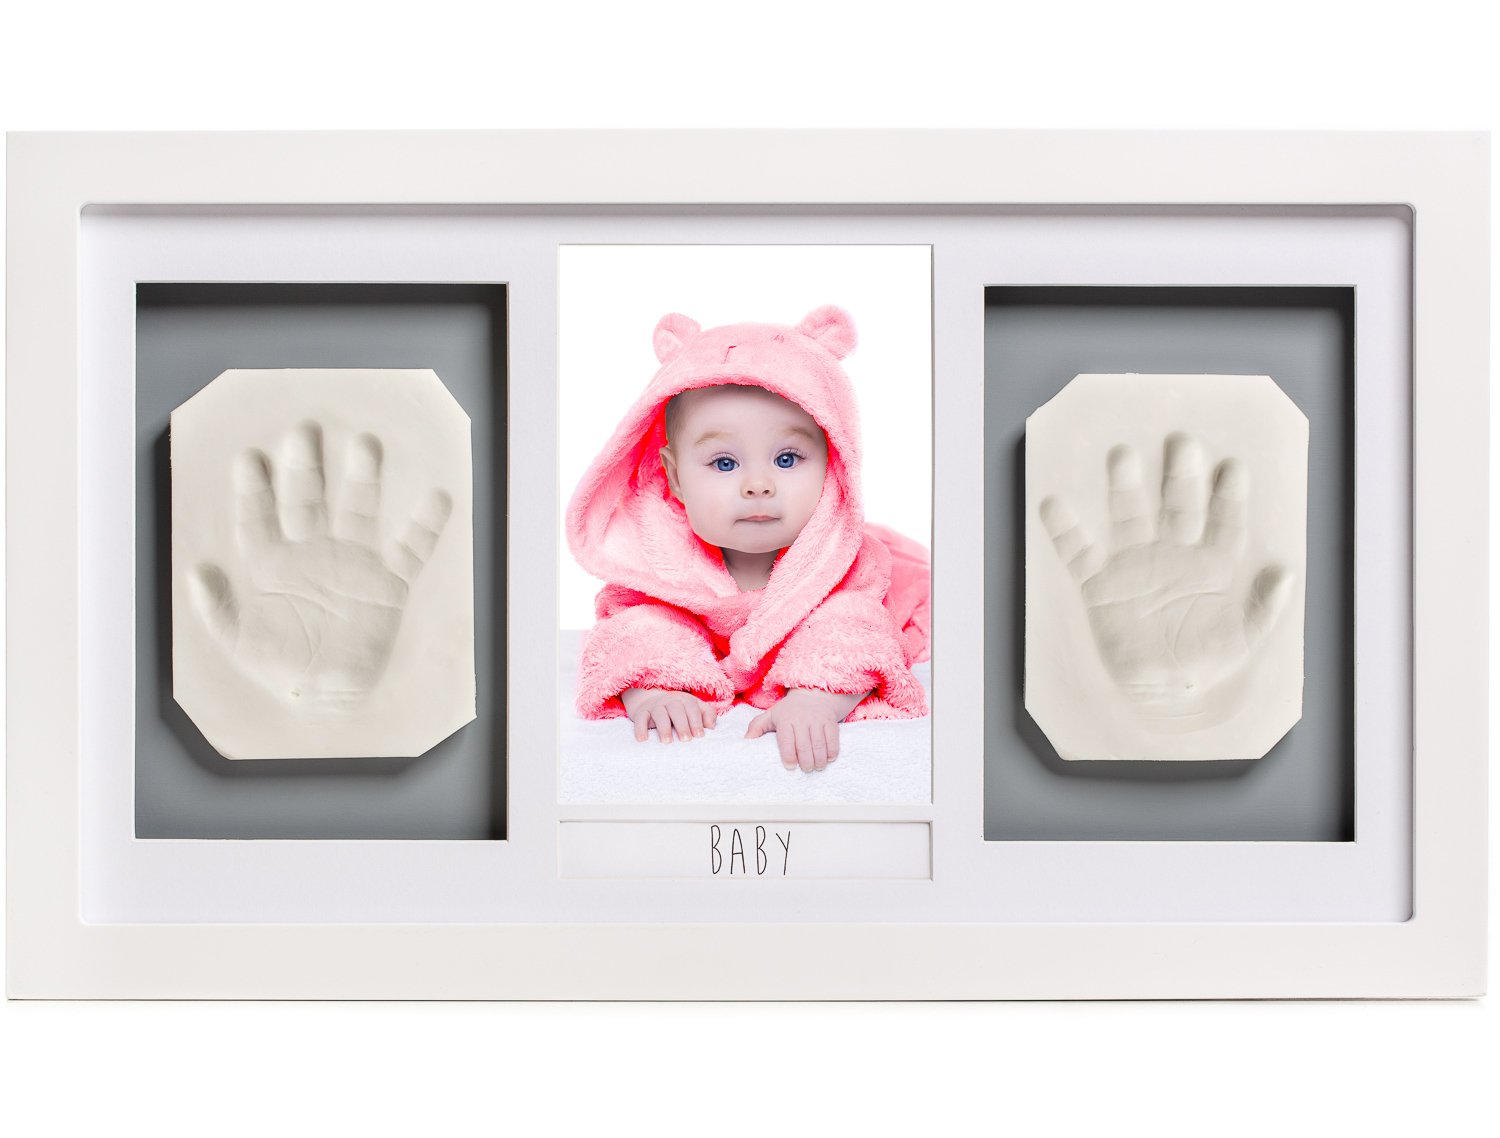 Lovely Baby Handprint or Footprint Picture Frame Kit -The Perfect Shower Gift for Boys and Girls, and A Forever Registry Memory, All in A Premium LARGE Wood Frame for Keepsake Decoration, Wall or Desk